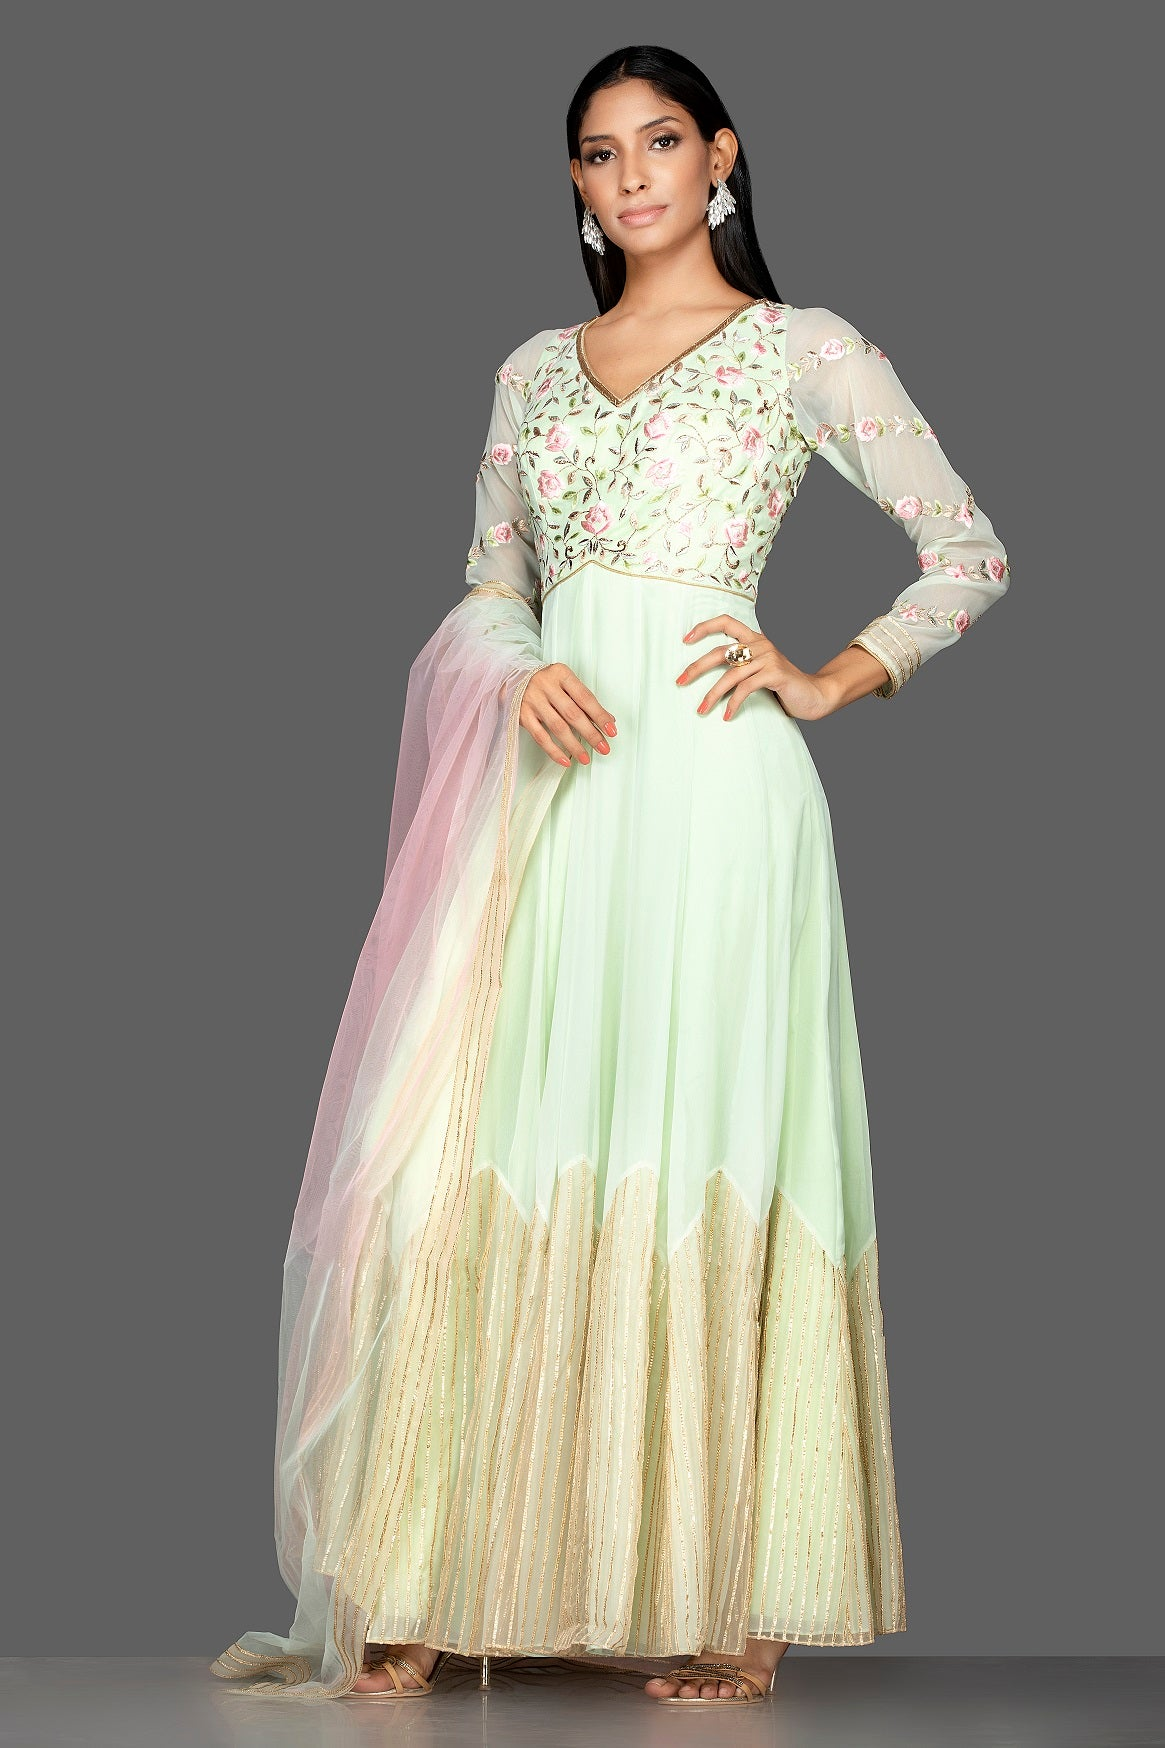 Buy mint green embroidered net floorlength Anarkali online in USA with dupatta. Spread ethnic elegance on weddings and special occasions in splendid designer lehengas, Anarkali suits crafted with exquisite Indian craftsmanship from Pure Elegance Indian fashion store in USA.-side